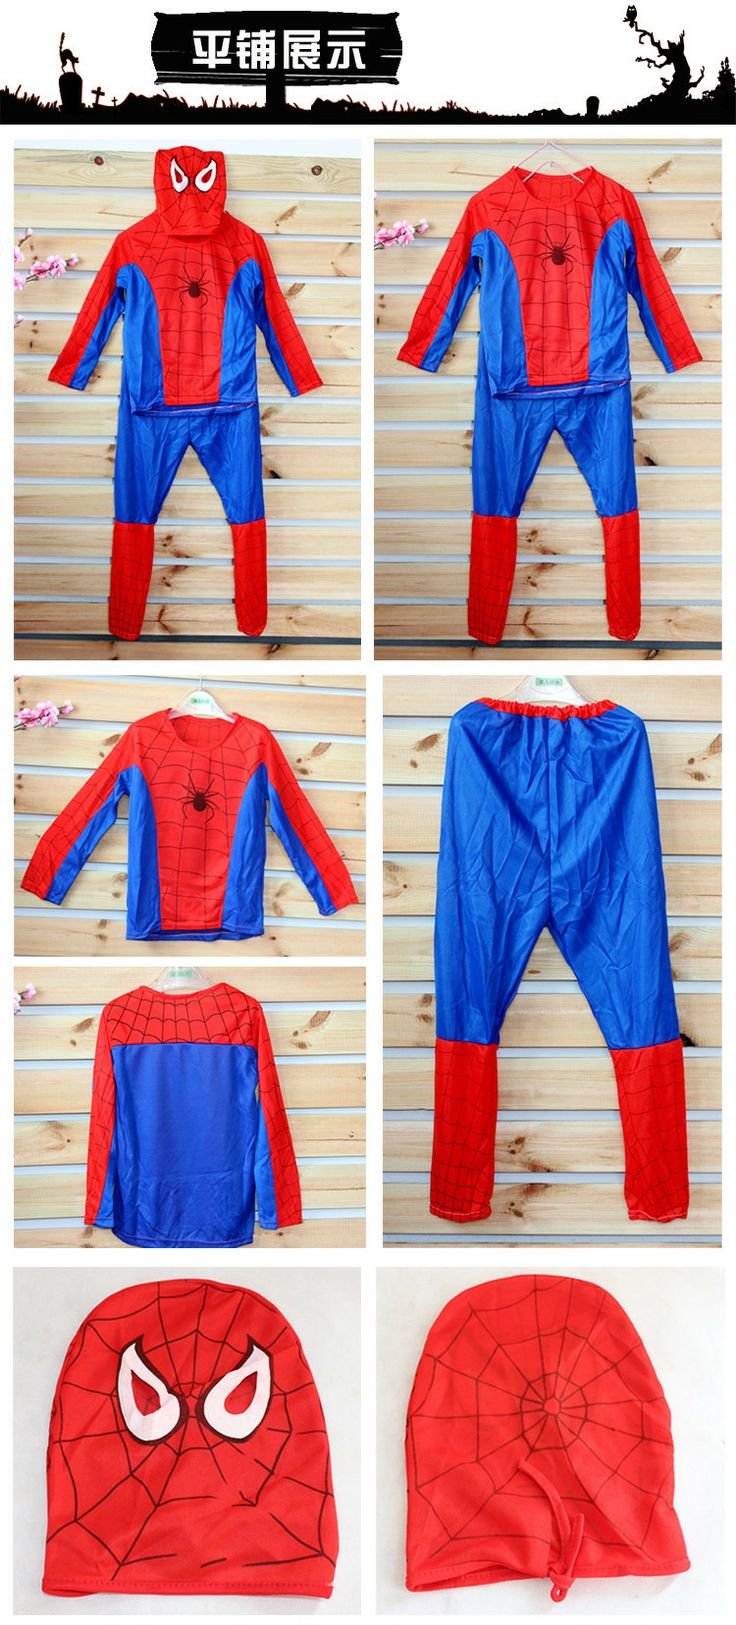 Hot Sale Spiderman Halloween Costumes for Children Hot Kids Christmas Costume Free Shipping